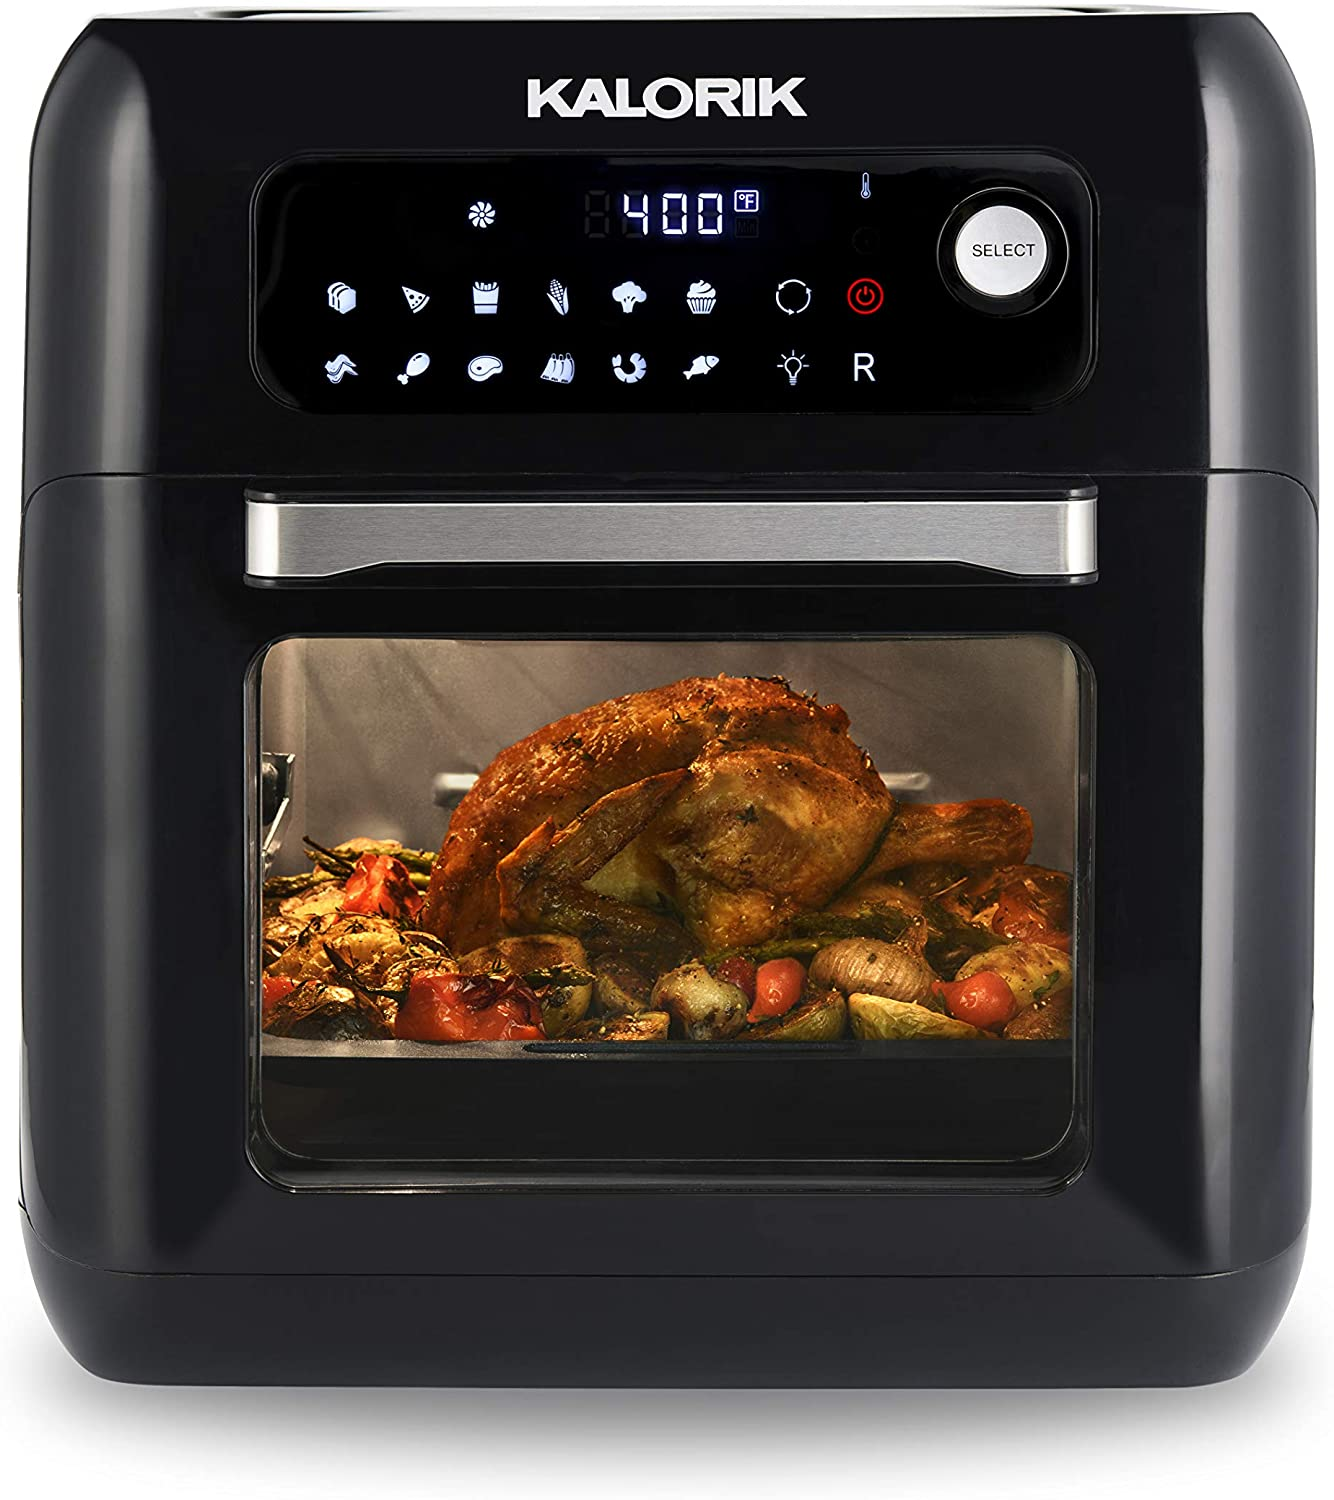 Kalorik AFO 44880 BK 6 QT XL Air Fryer Oven With 13 in 1 Cooking Options, 20 Recipes and 9 Accessories Including Rotisserie